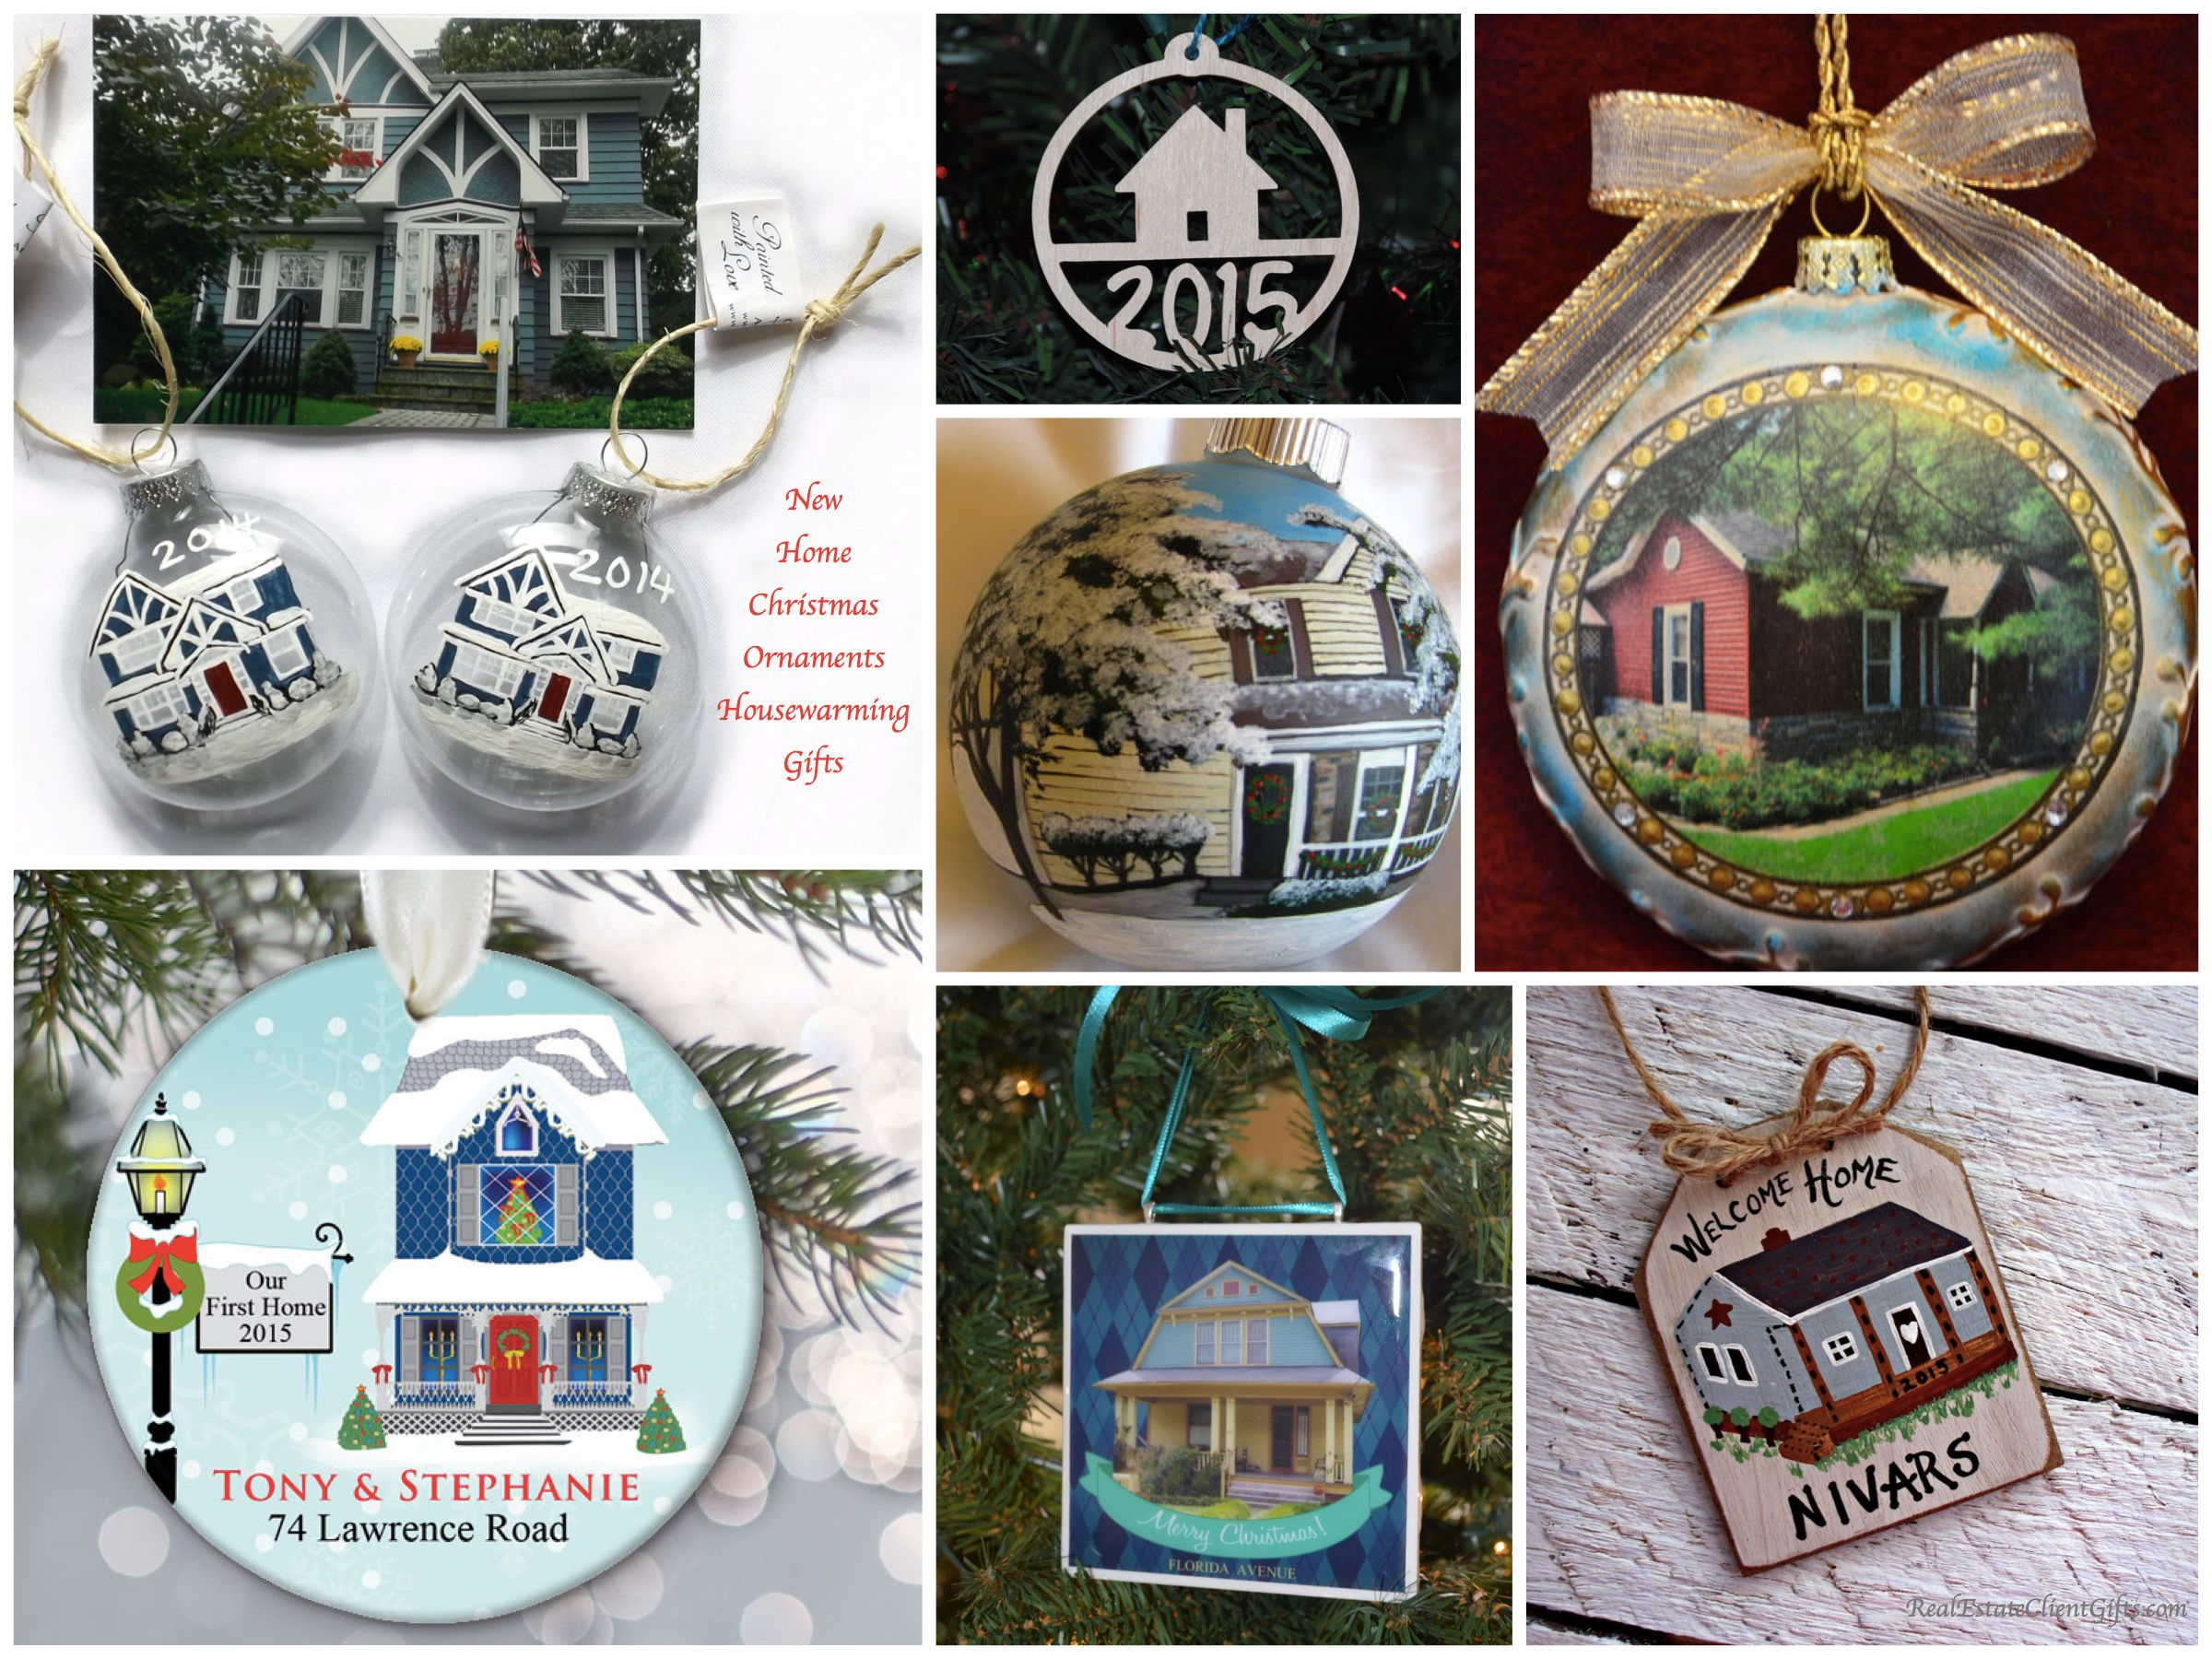 Home christmas ornaments - Realtor Holiday Gift Guide 10 Best Christmas Housewarming Presents New Home Christmas Ornaments Real Estate Closing Gifts Pinterest Home